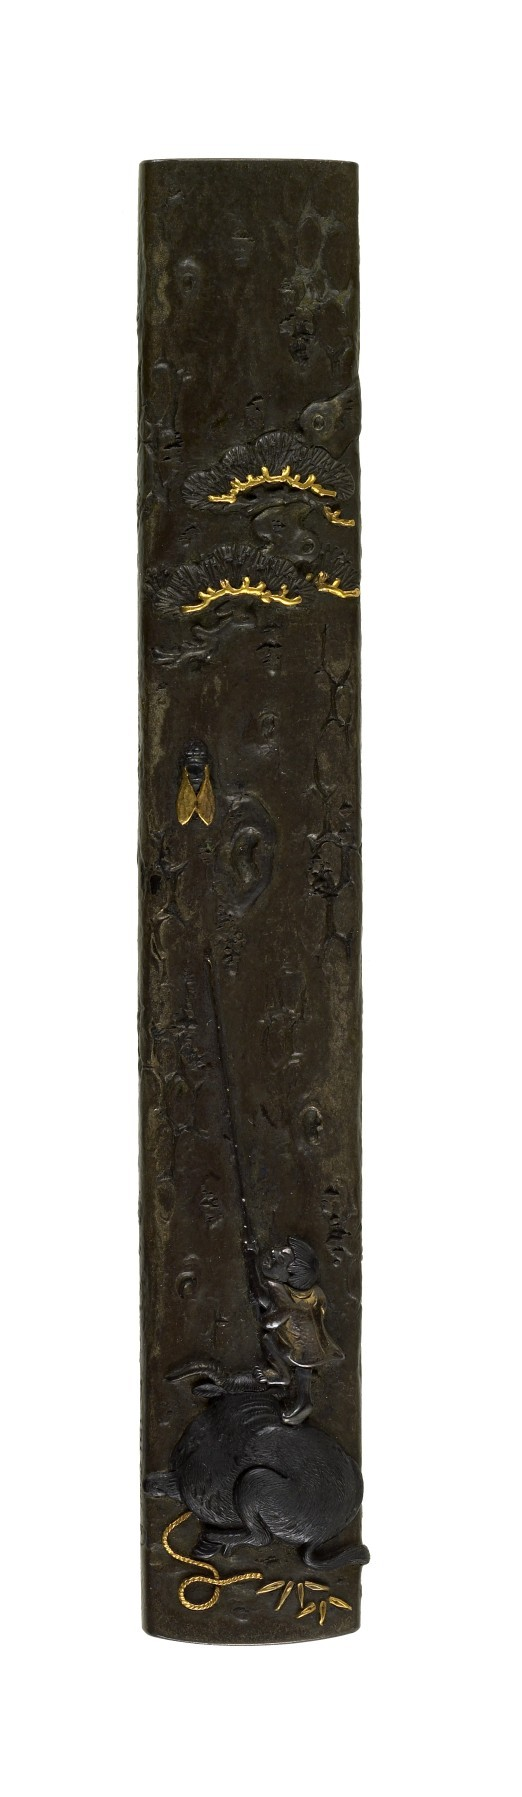 Kozuka with Boy Standing on an Ox Trying to Catch a Cicada